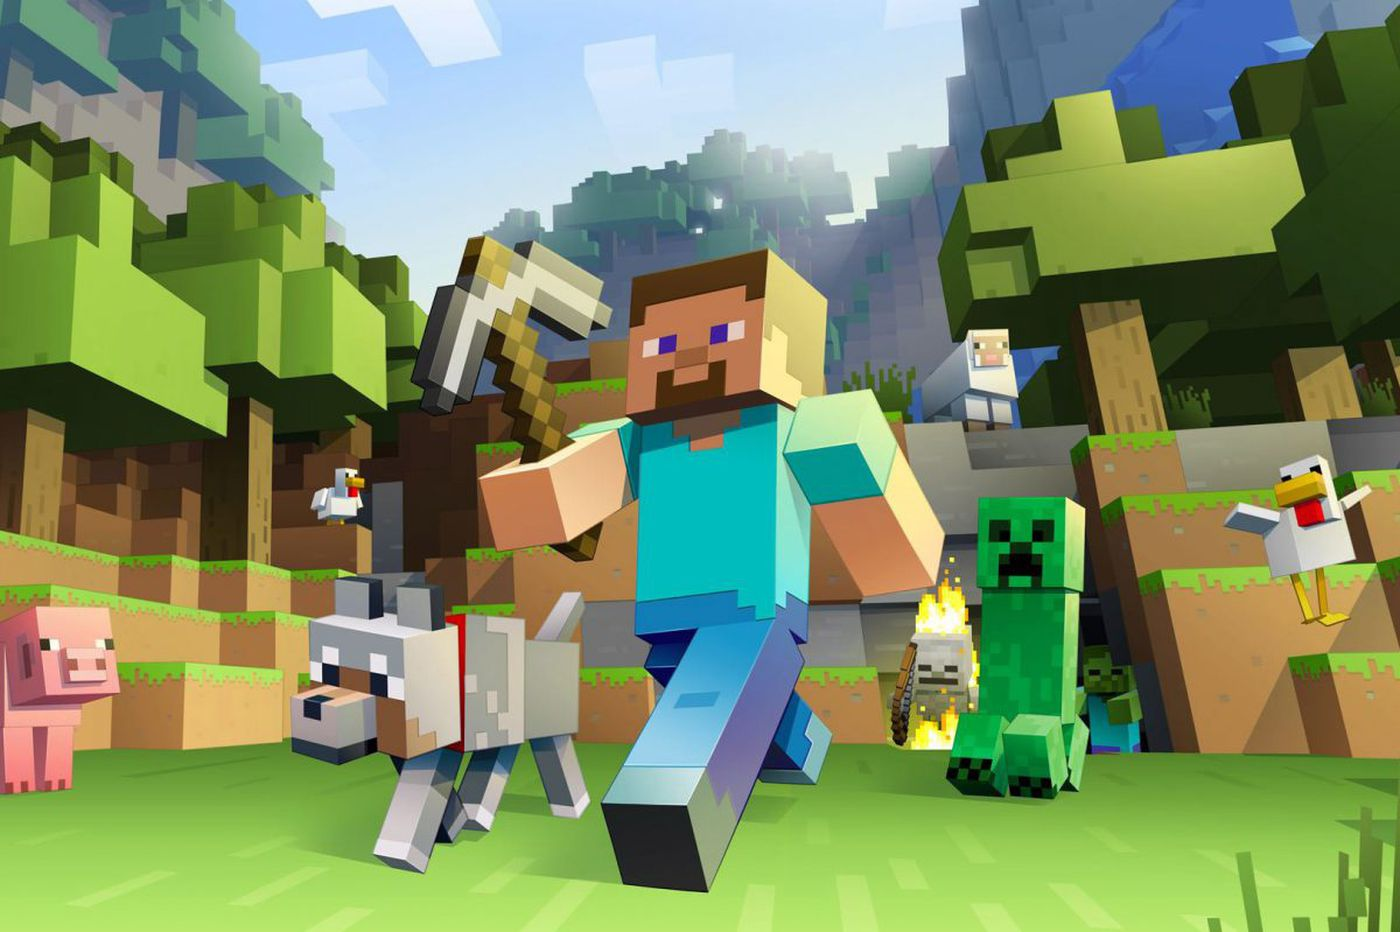 Minecraft 'Block' Party, The Weeknd, Brazilian Day and other things to do in Philadelphia, Sept. 15 to 21